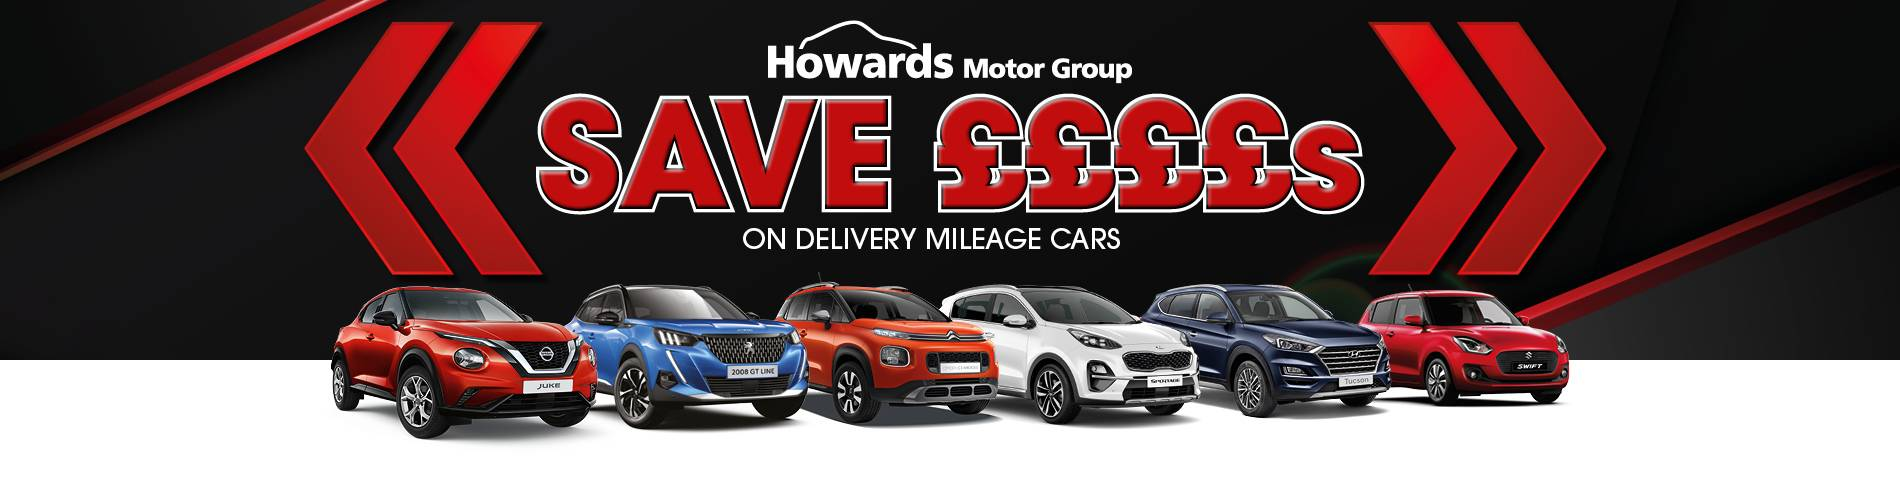 Delivery Mileage Cars